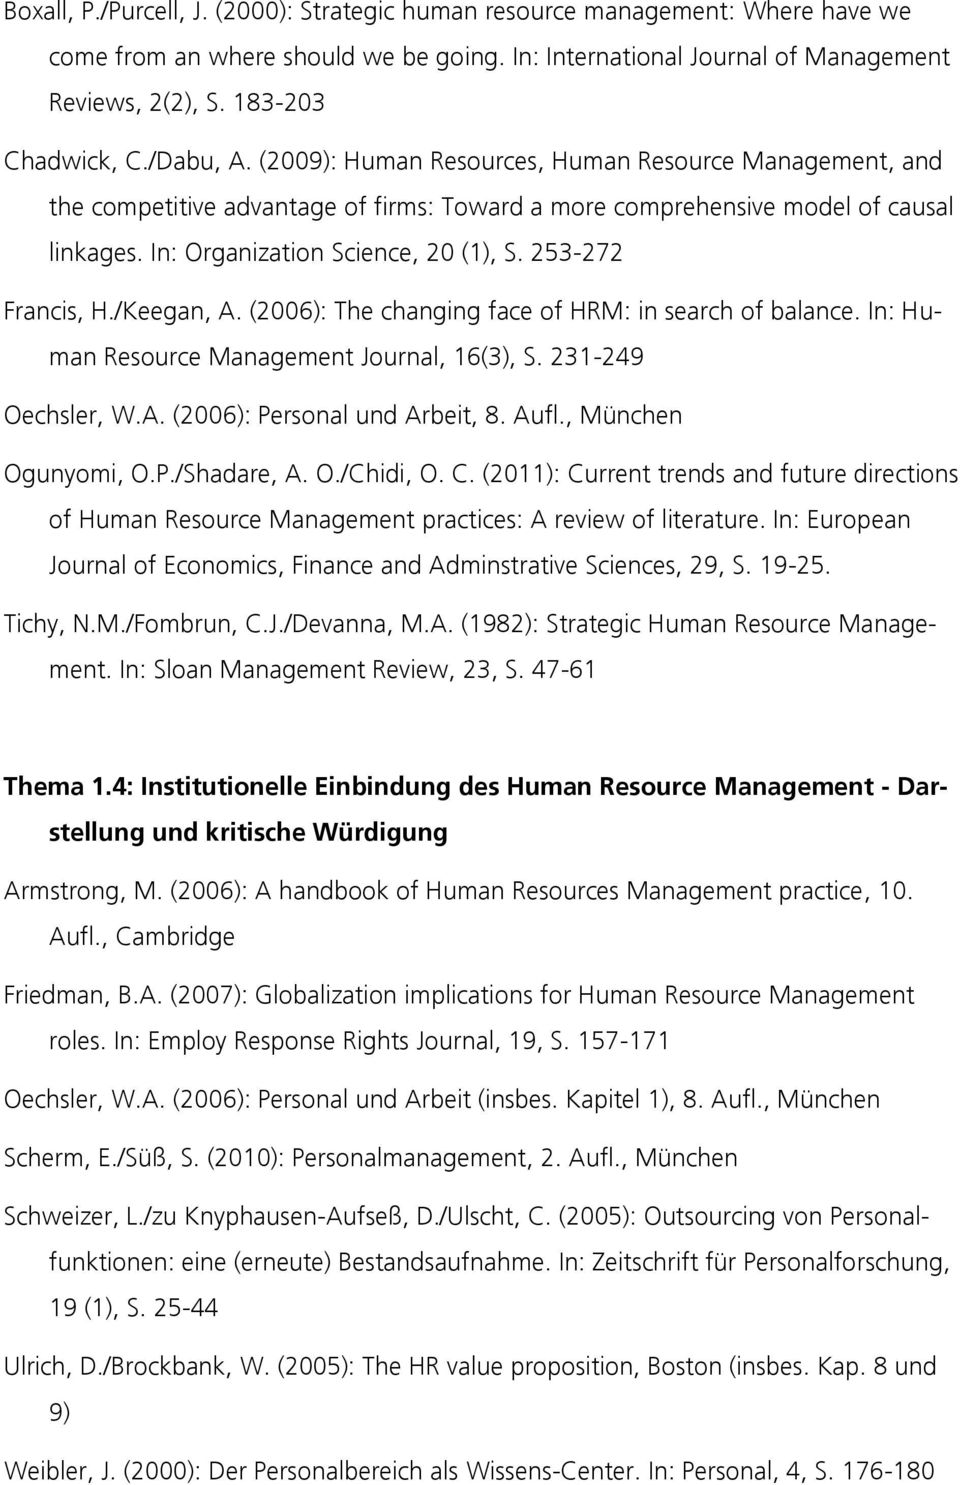 253-272 Francis, H./Keegan, A. (2006): The changing face of HRM: in search of balance. In: Human Resource Management Journal, 16(3), S. 231-249 Oechsler, W.A. (2006): Personal und Arbeit, 8. Aufl.